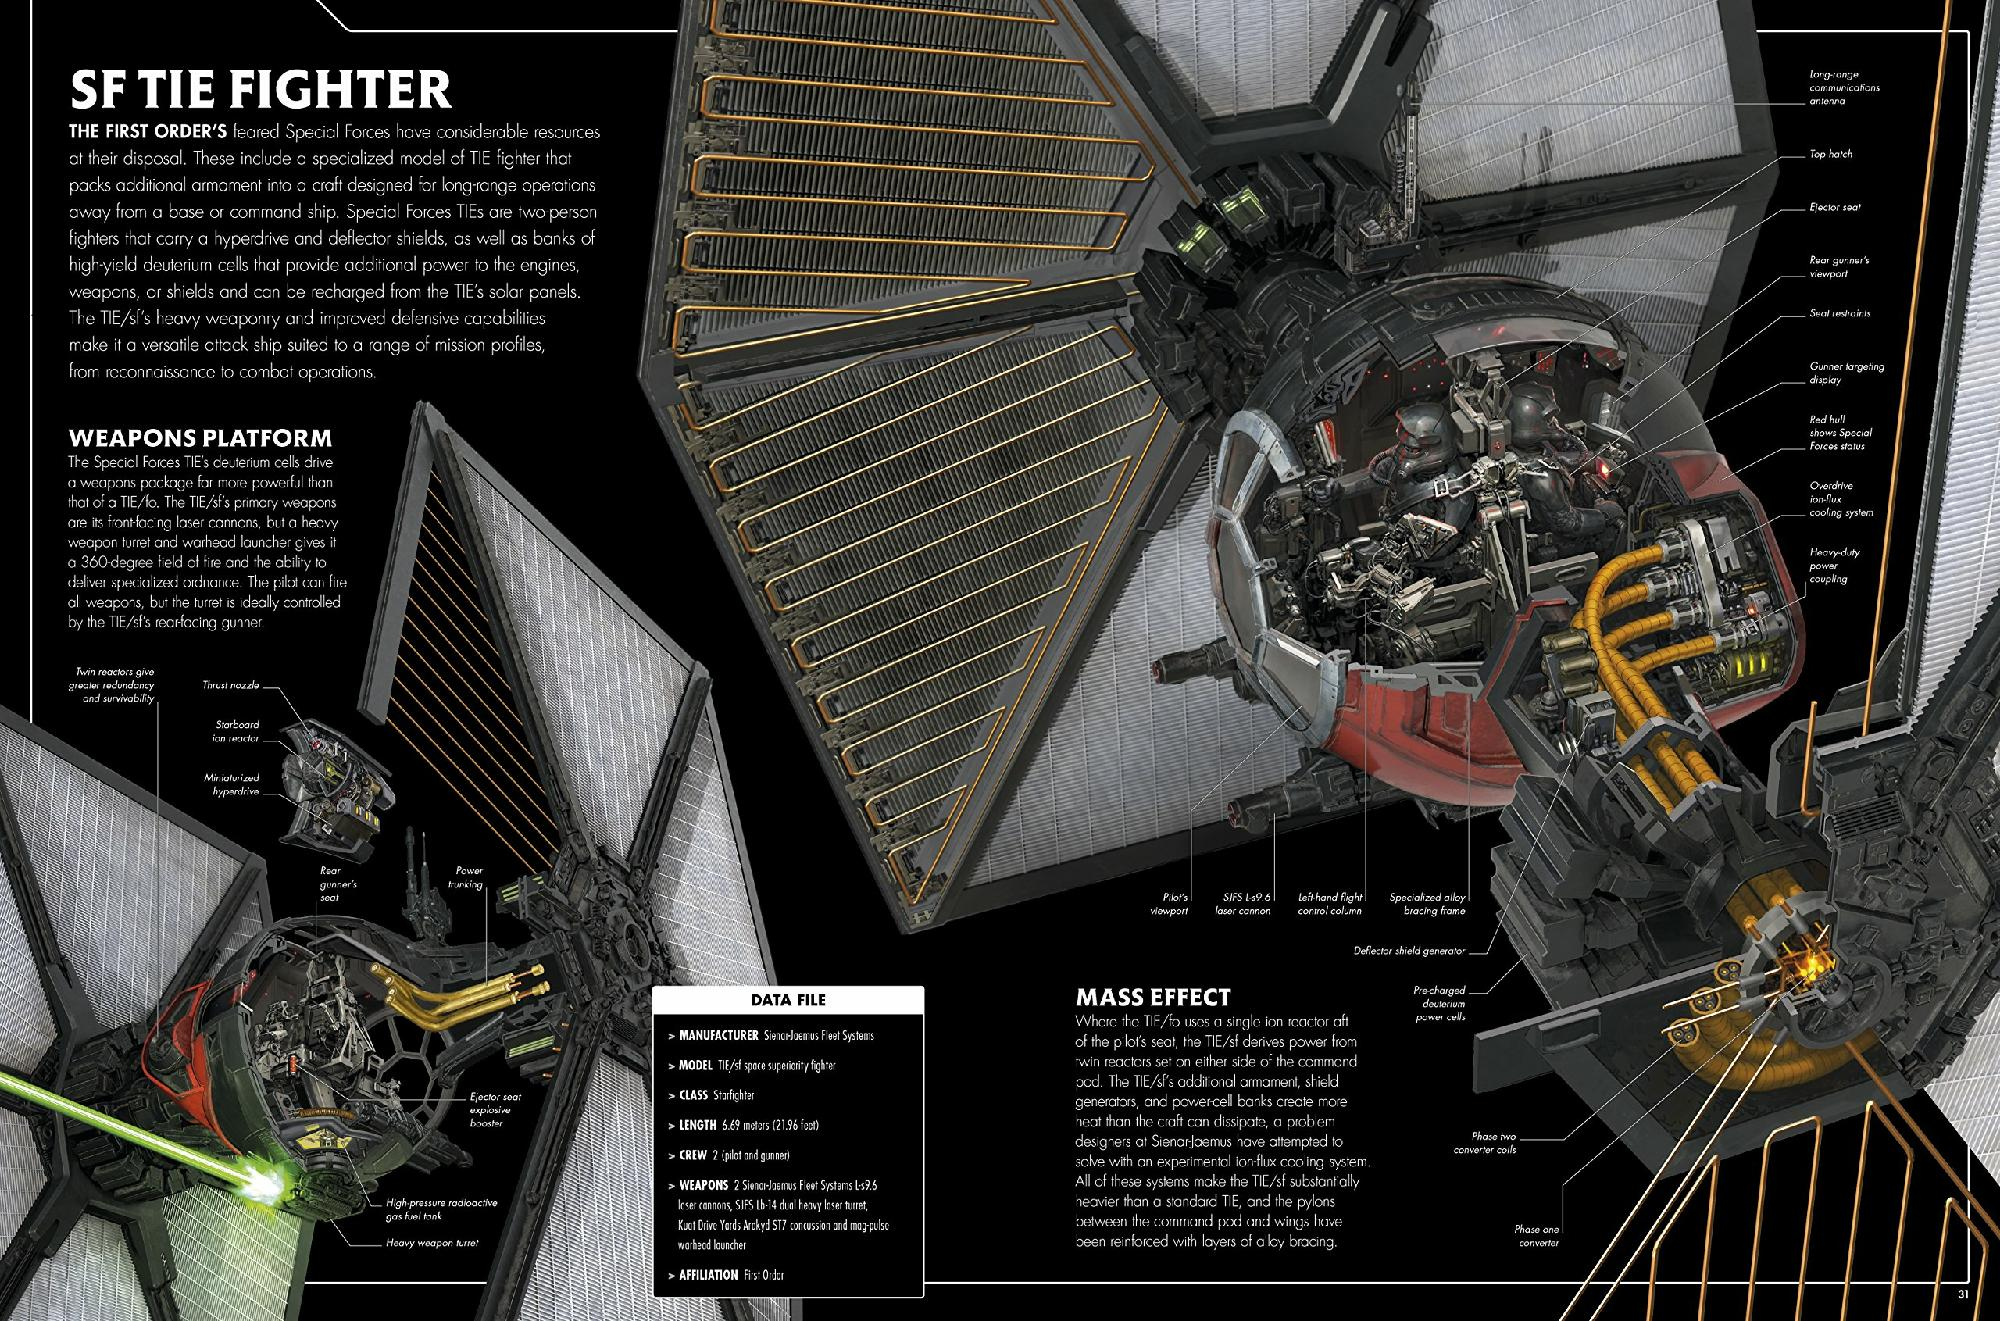 Are Star Wars Cross-Sections Made on Computers?